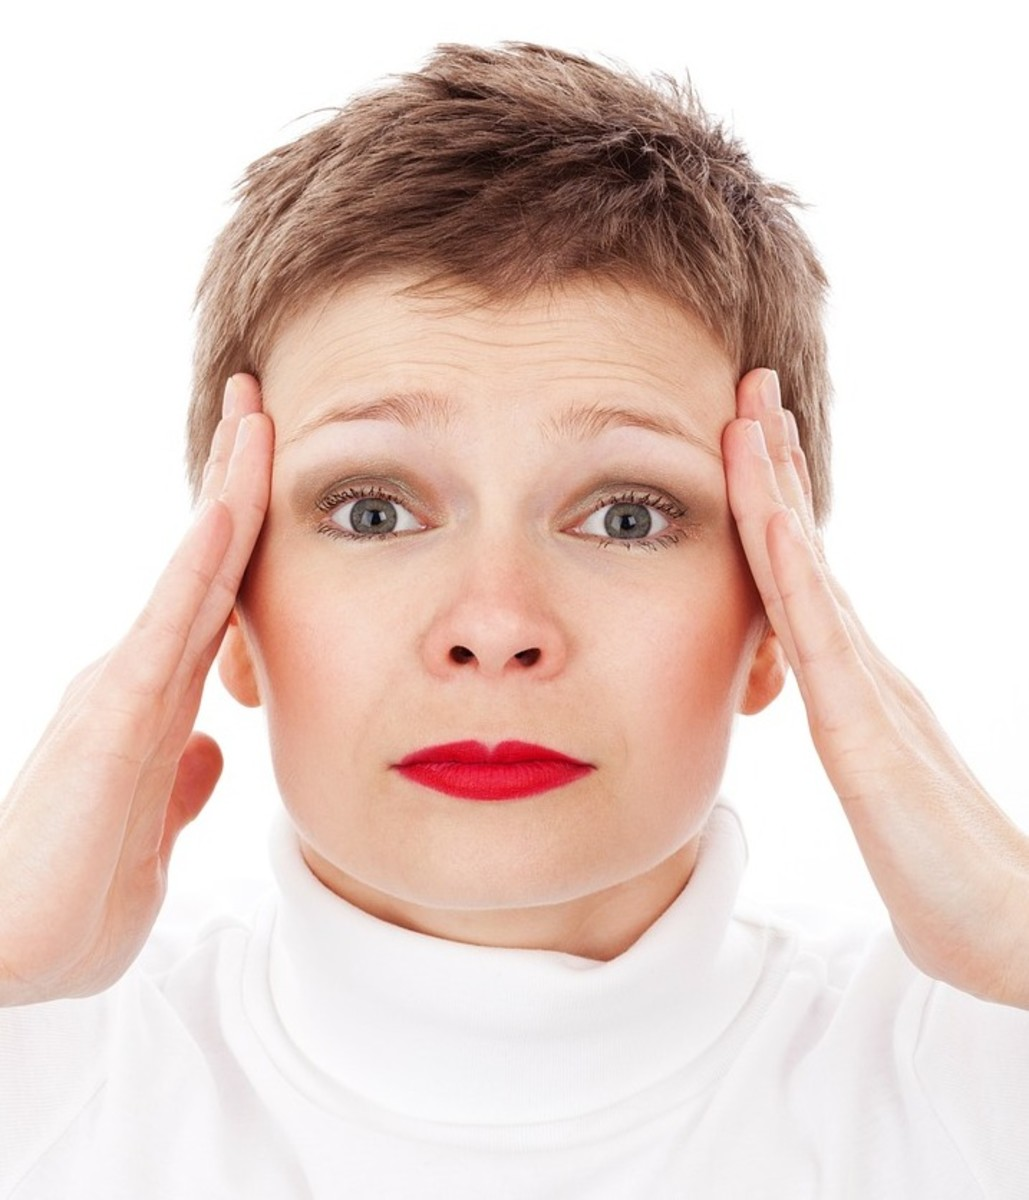 Migraines cause a variety of unpleasant symptoms including headache, nausea and fatigue.